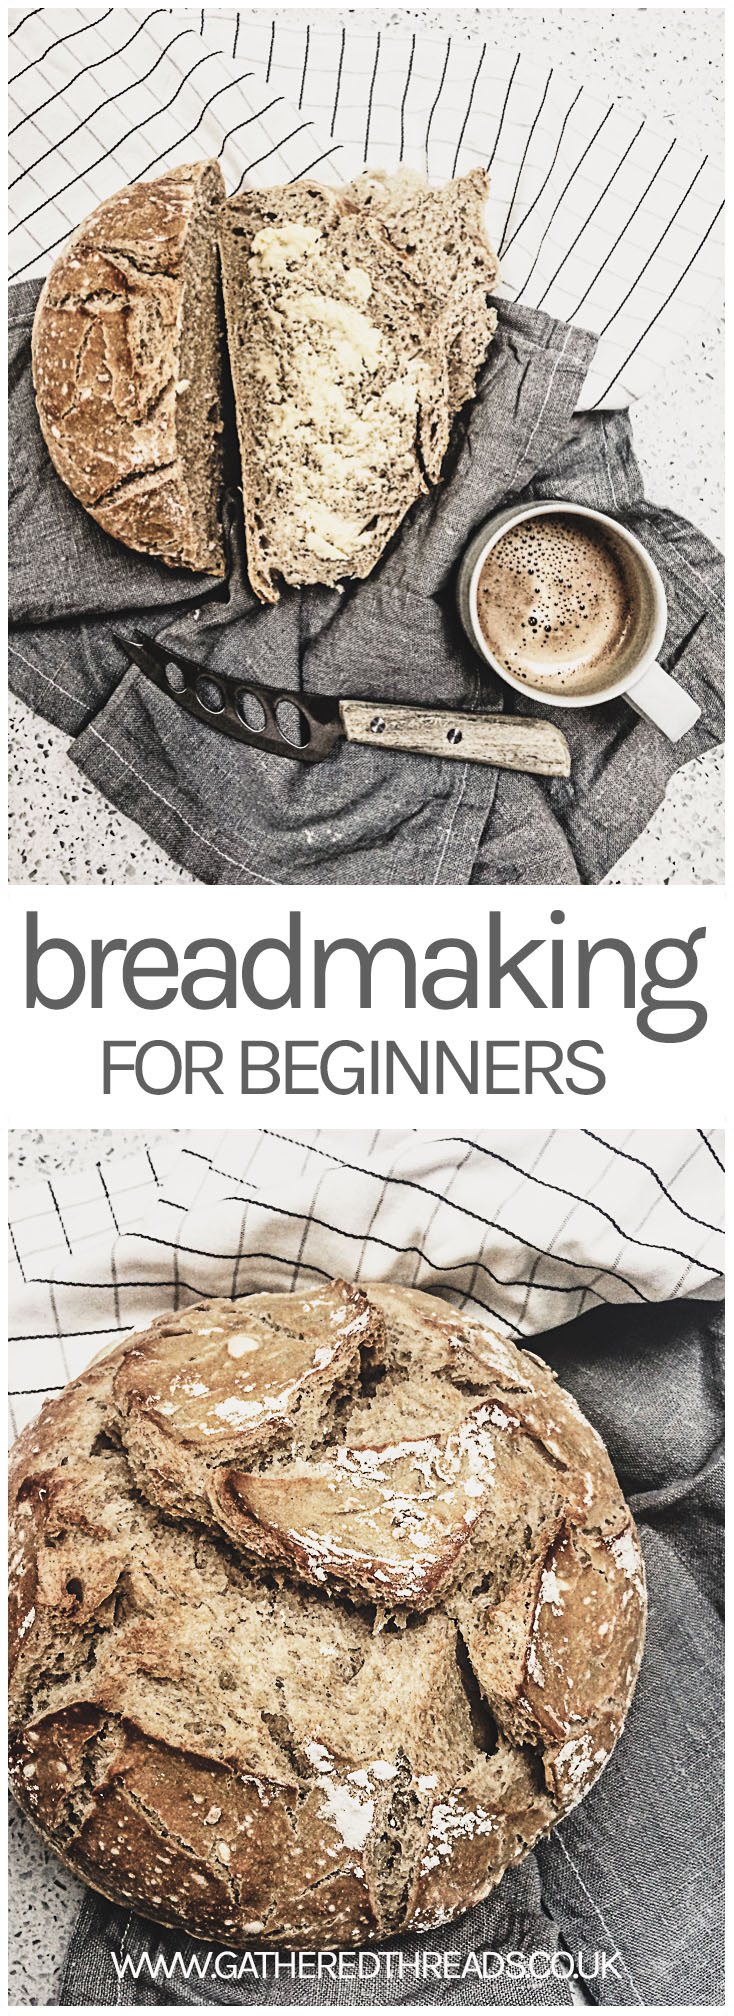 Breadmaking for beginners. An easy fool proof recipe.